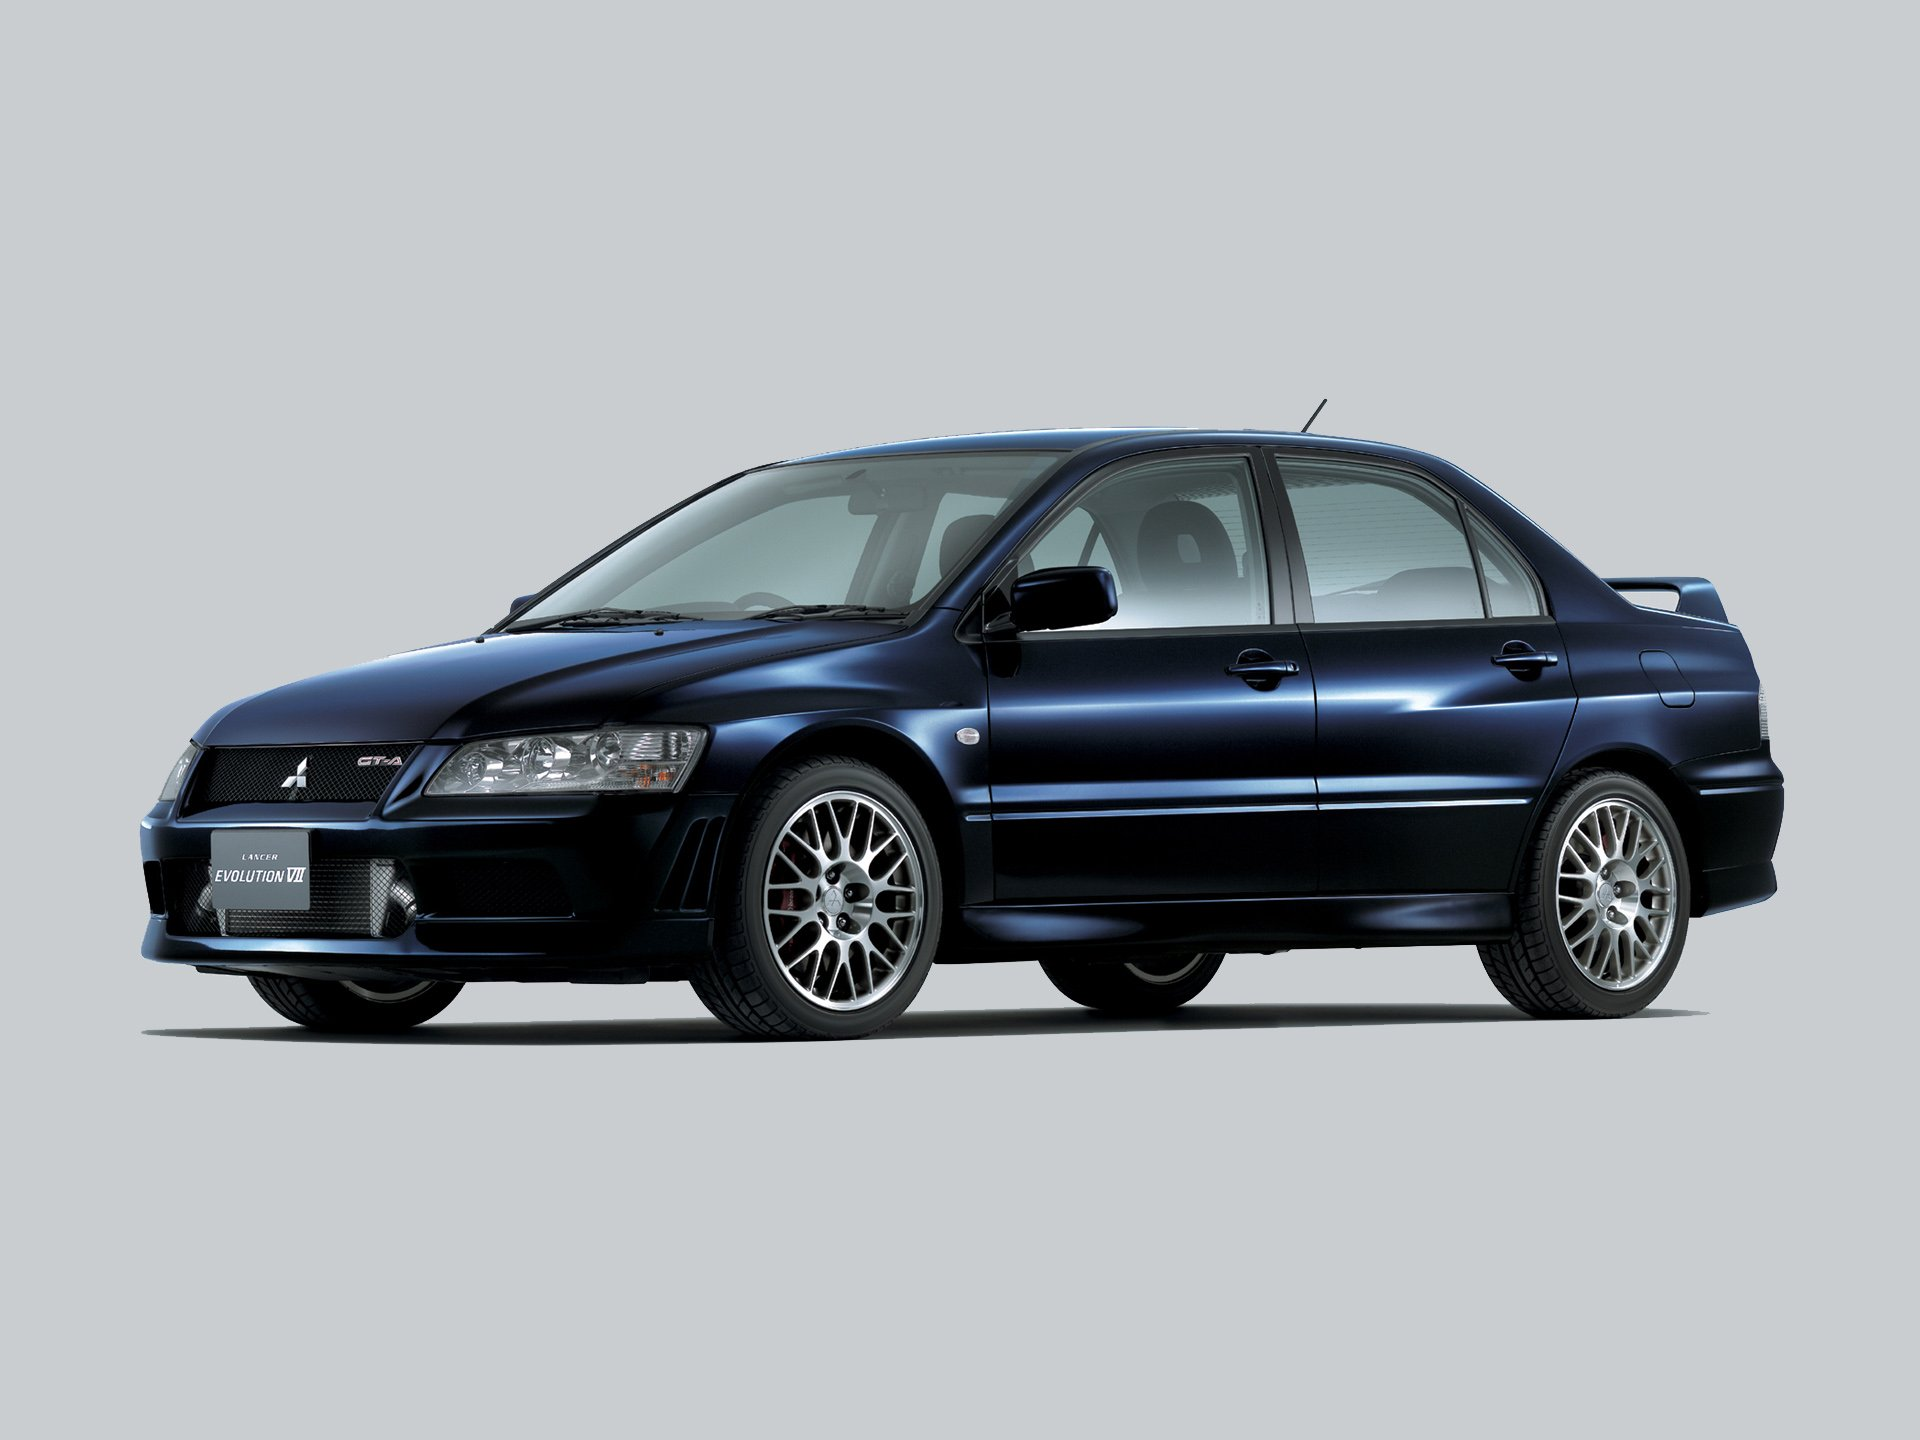 Mitsubishi Lancer evo VII GTA cars 2002 wallpaper  1920x1440